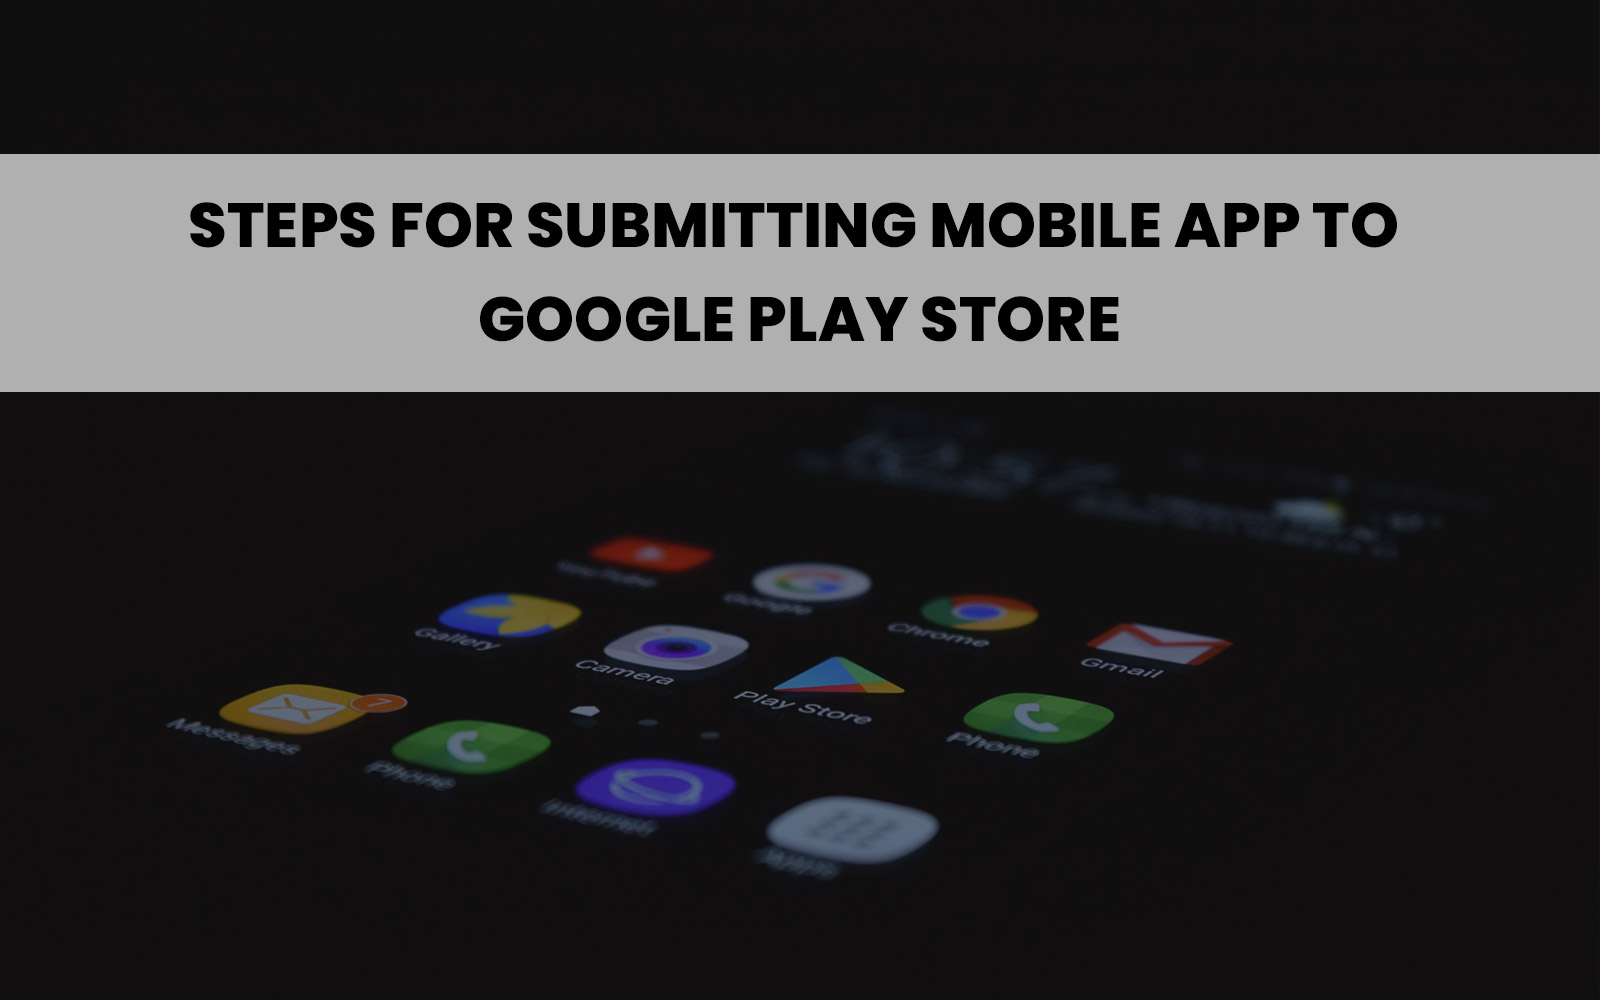 Step by Step Process on How to Submit Mobile App to Google Play Store